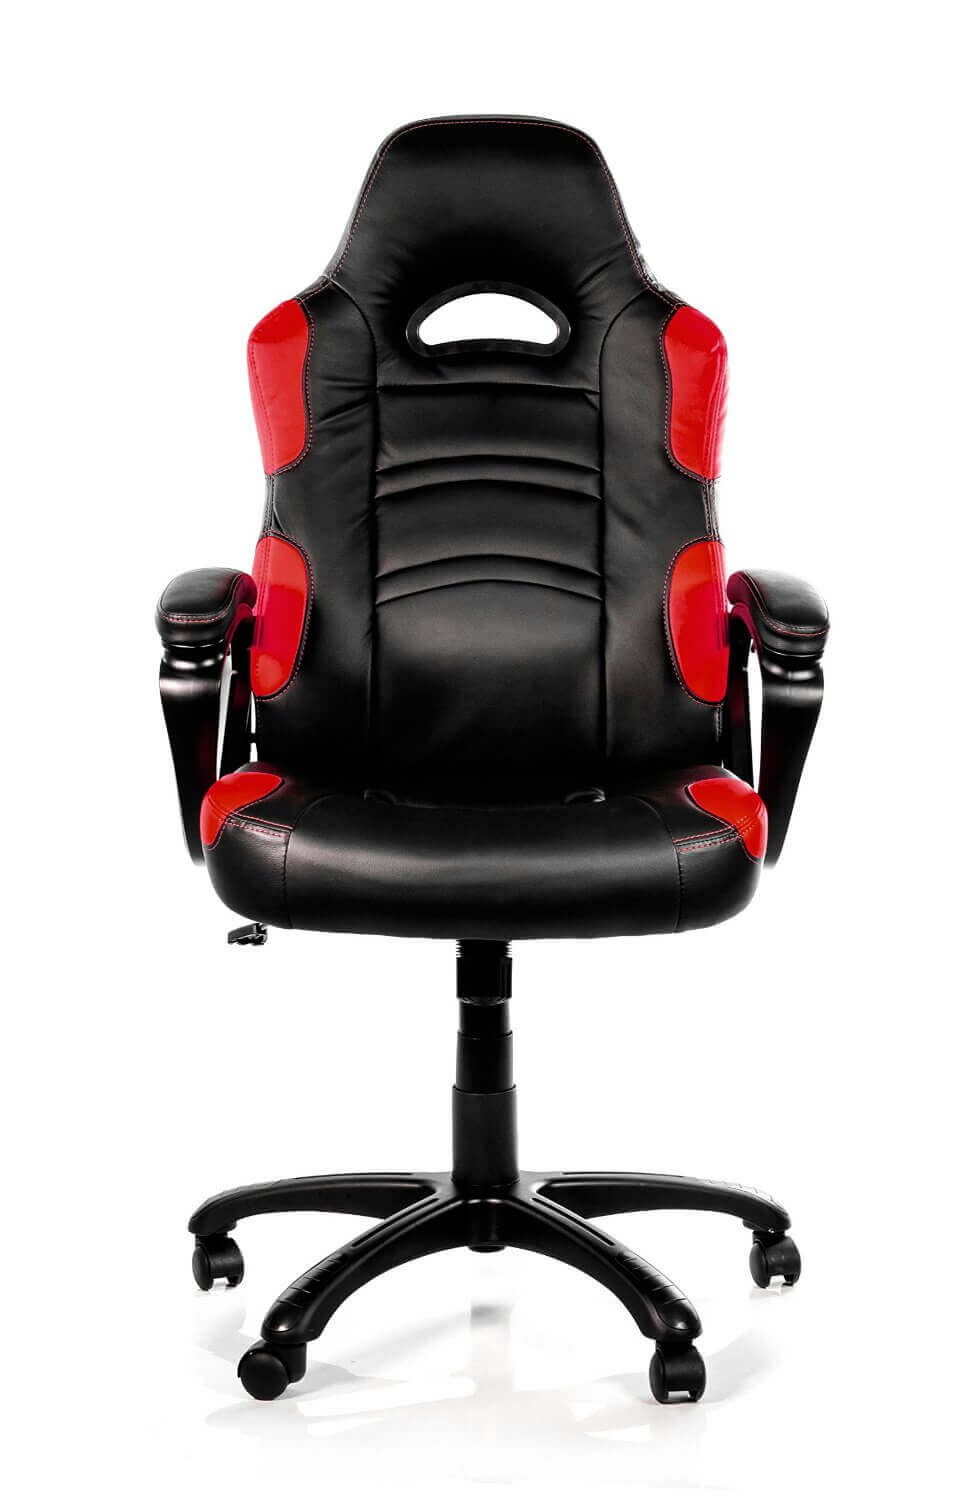 Arozzi Enzo series gaming chair